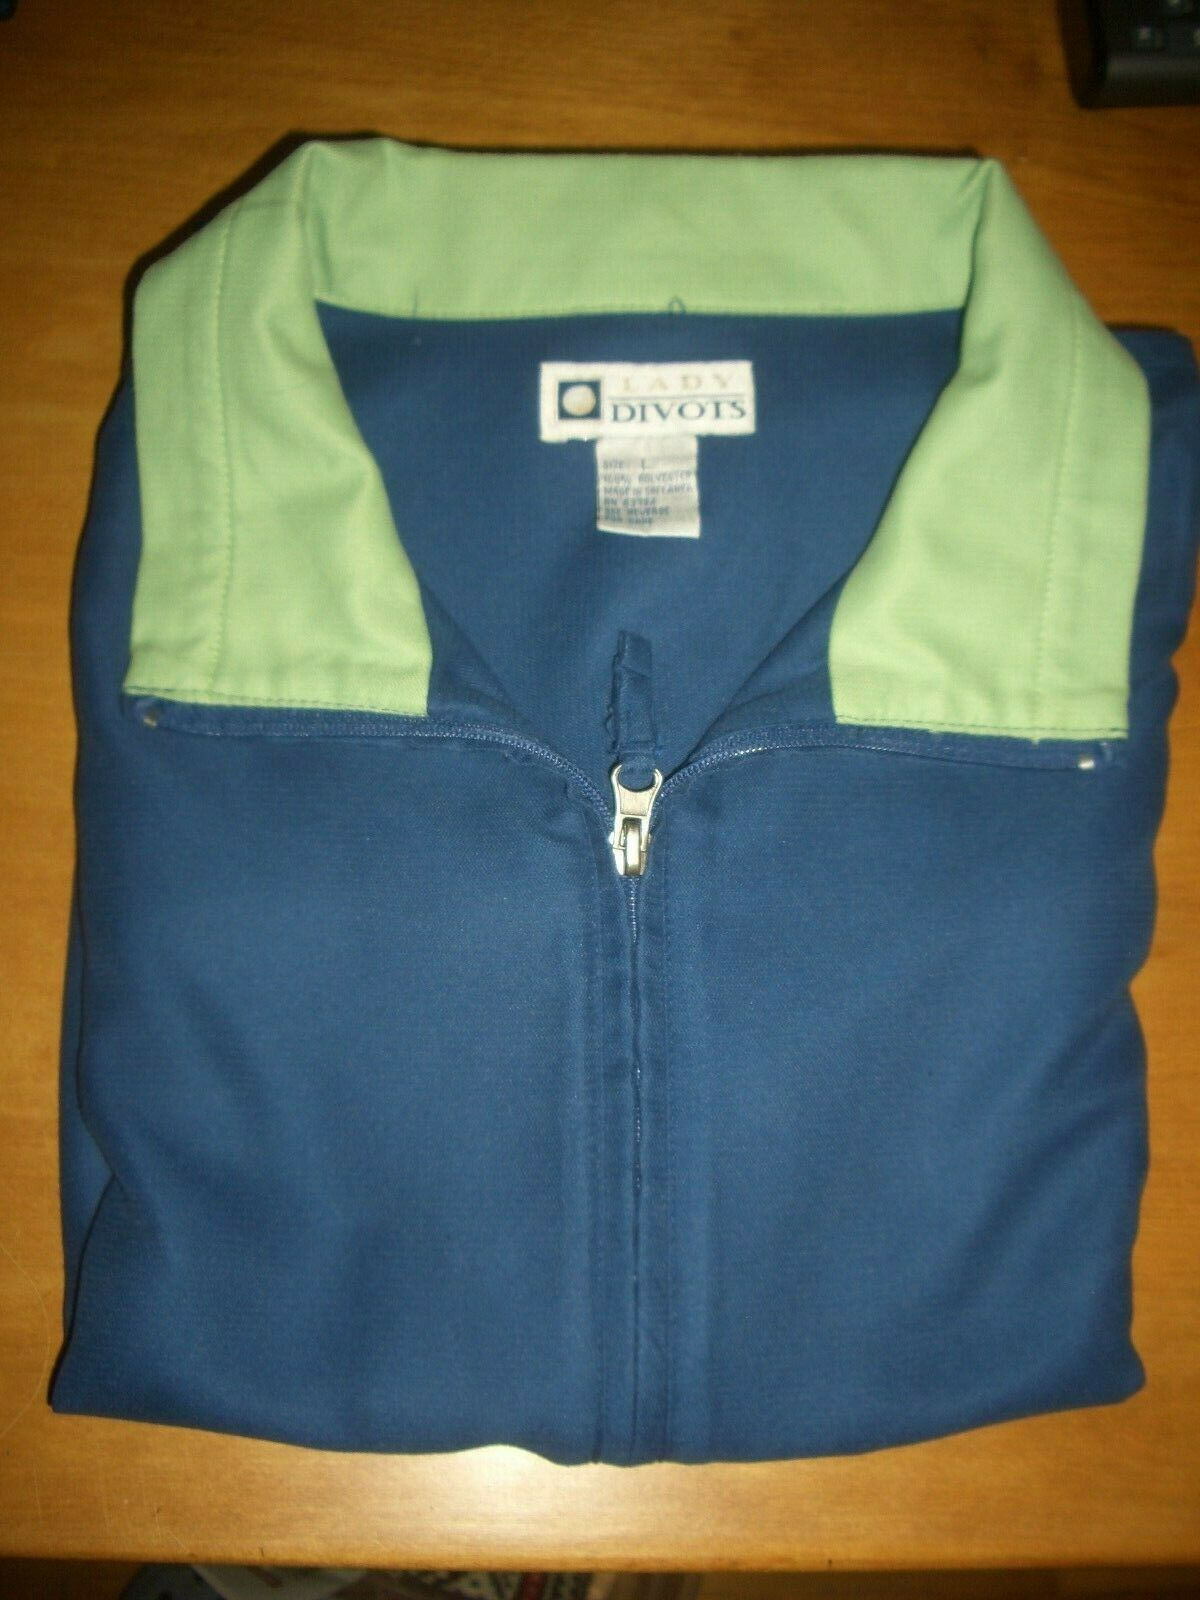 Lady Divots full Zipper Vest-Lg. Navy with Lime Green Collar-Excellent condition